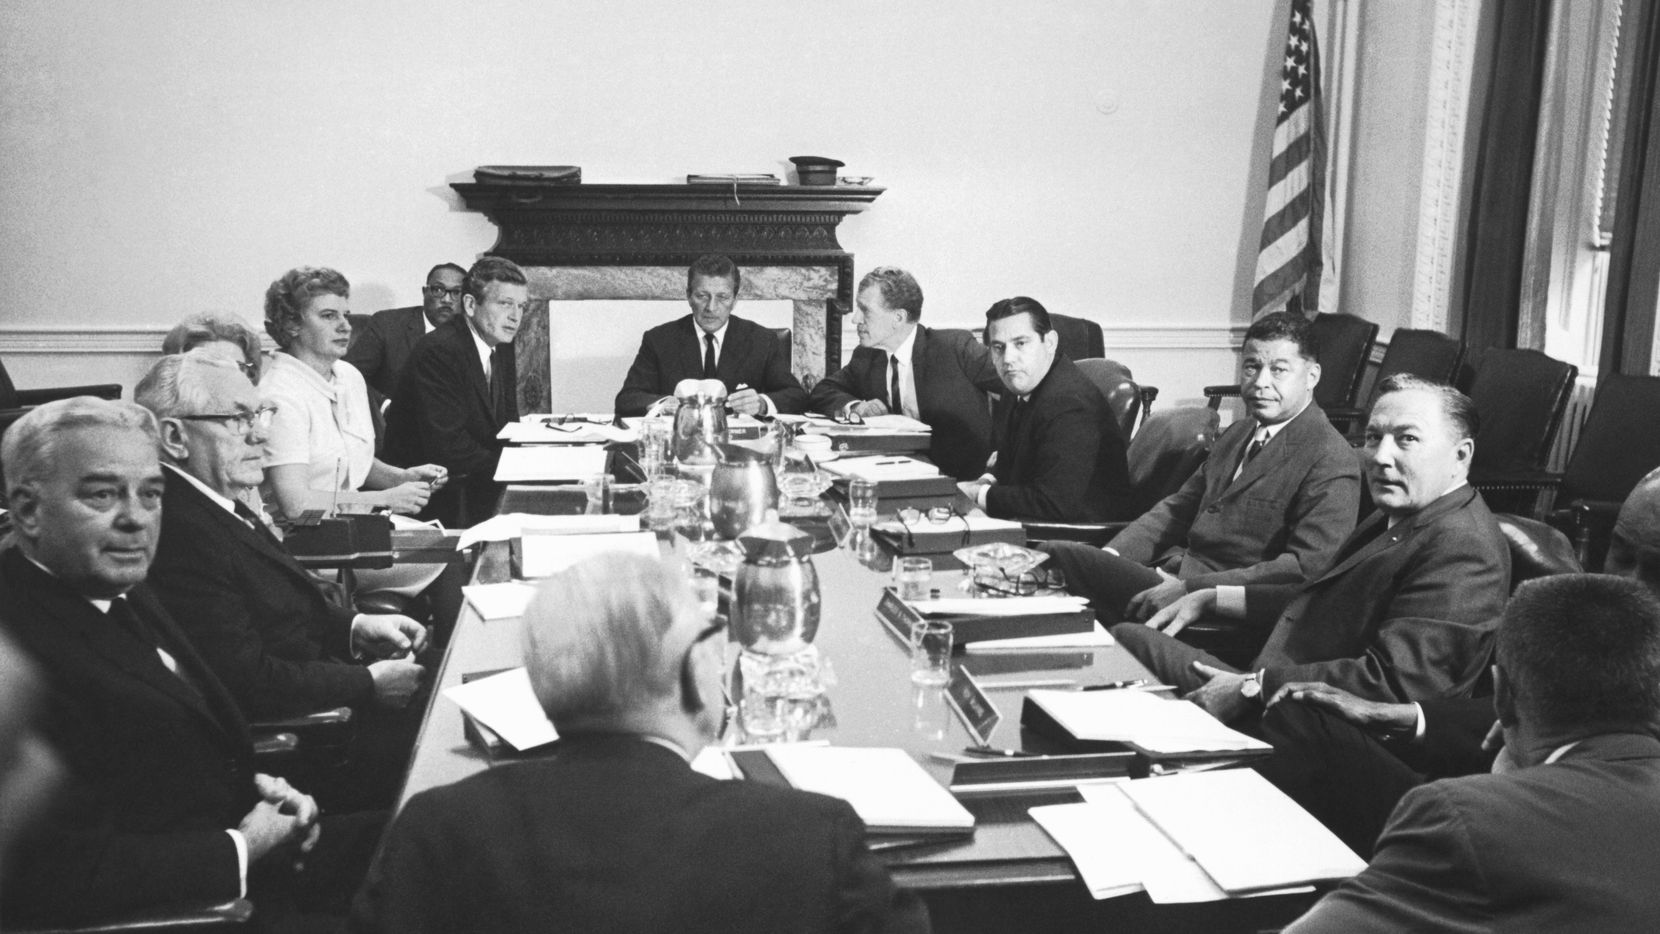 The Kerner Commission in session, Washington D.C., 1967. Officially called the National Advisory Commission on Civil Disorders, it was created by President Lyndon Johnson to investigate the causes of the 1967 race riots in the United States and to provide recommendations for the future.